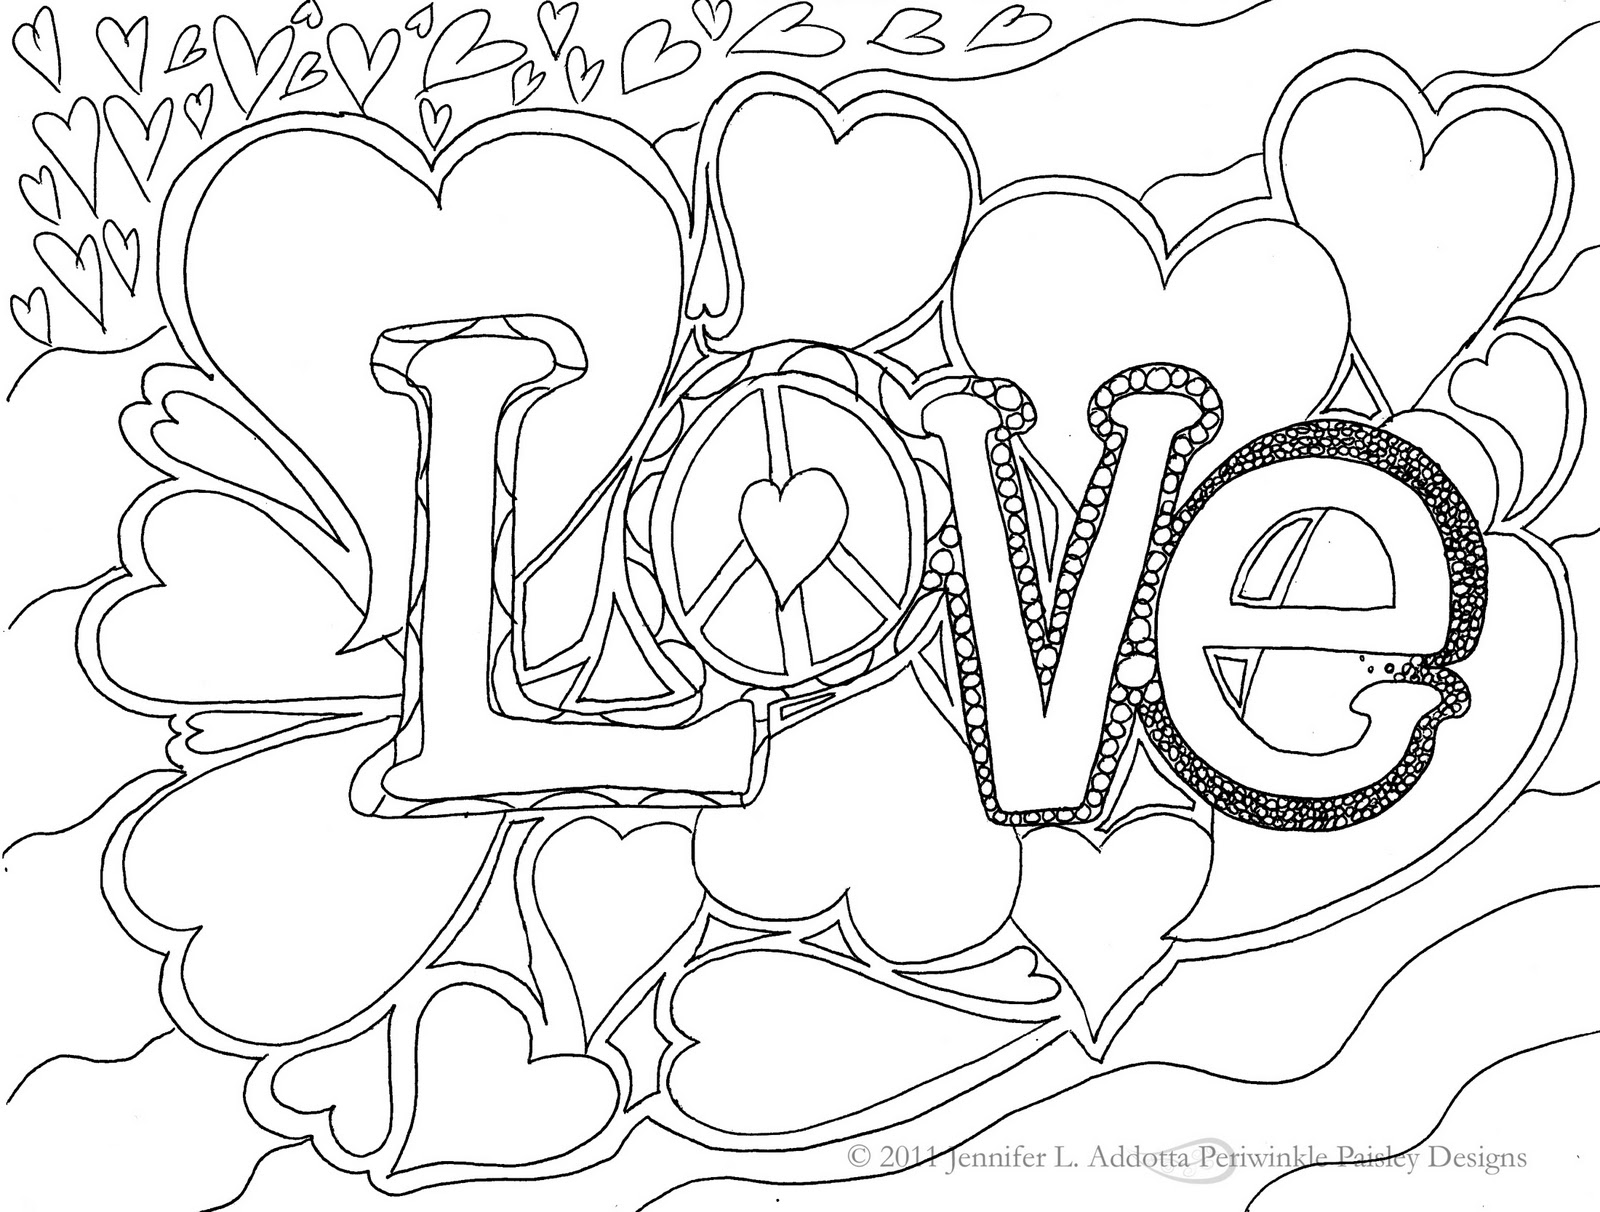 Printable Coloring Pages For Adults Walloid - print coloring pages for adults